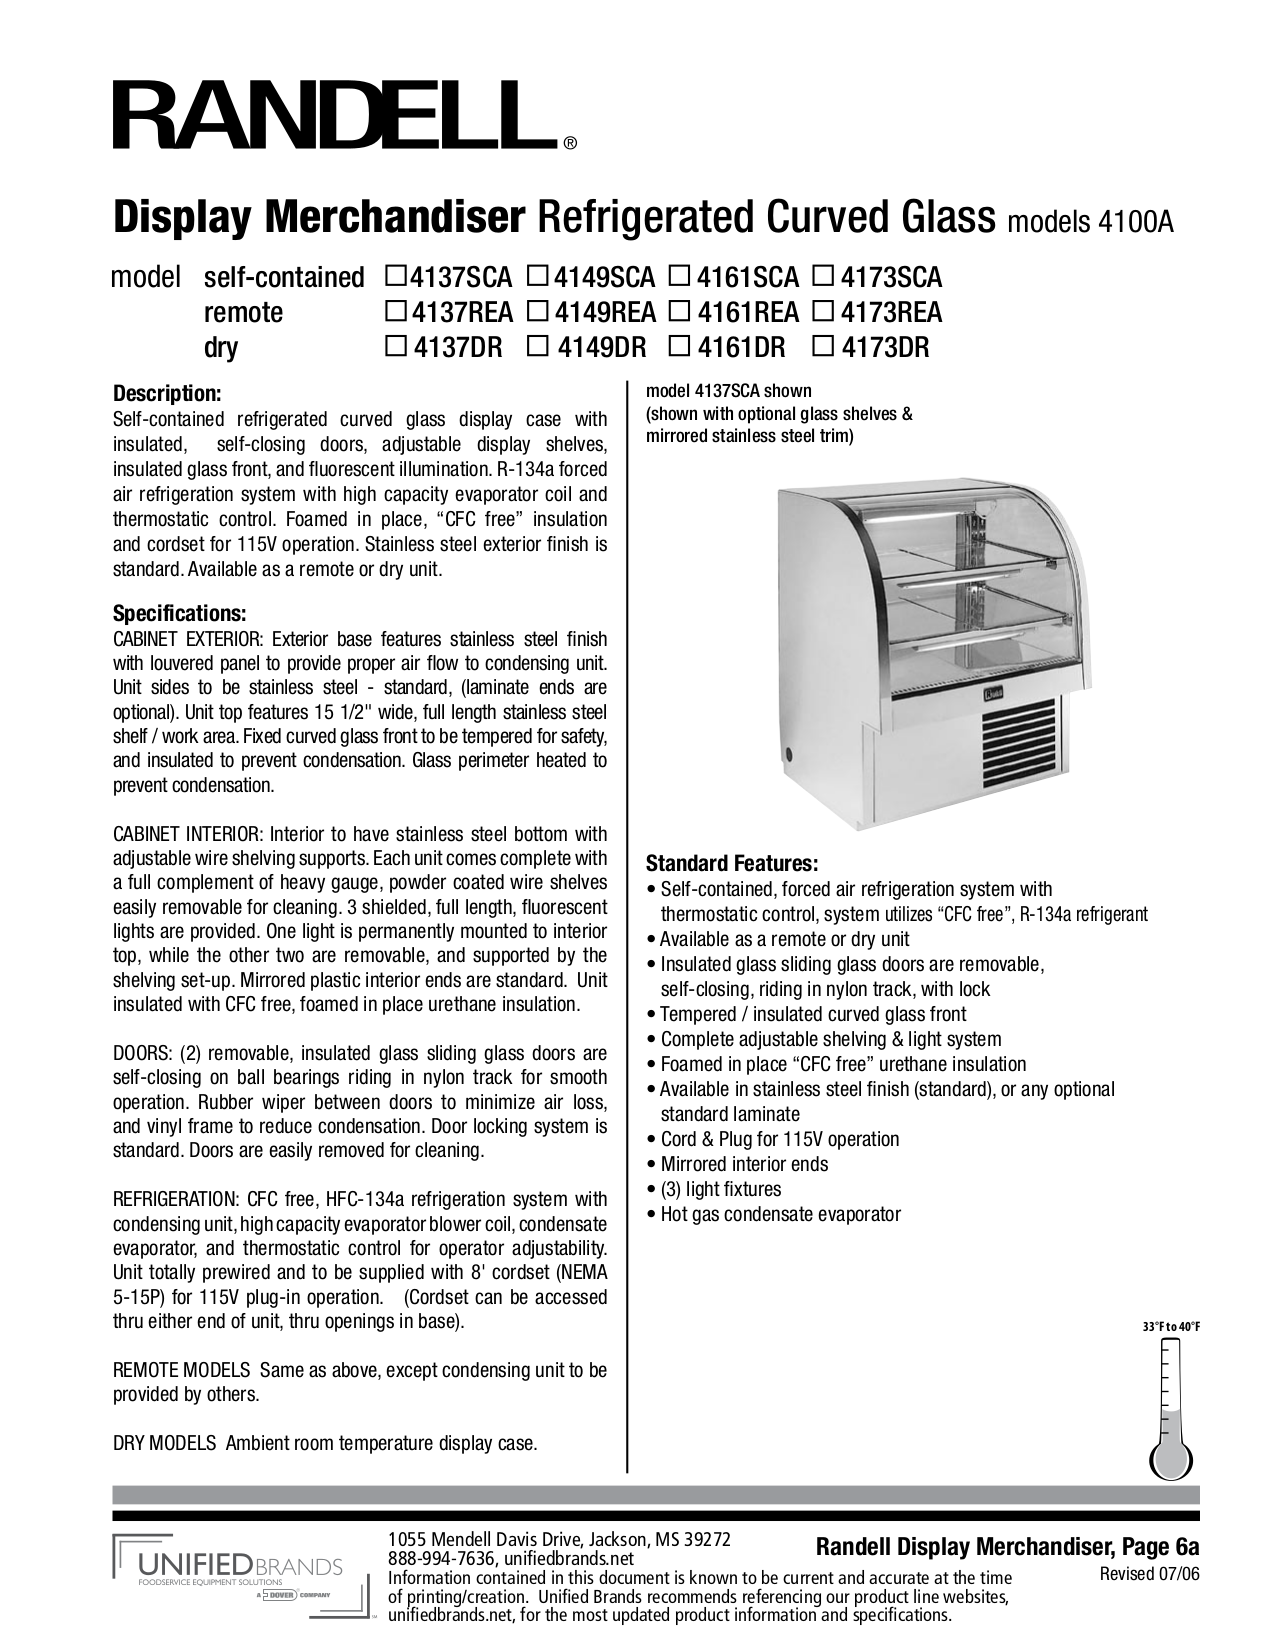 pdf for Randell Other 4137SCA Merchandisers manual